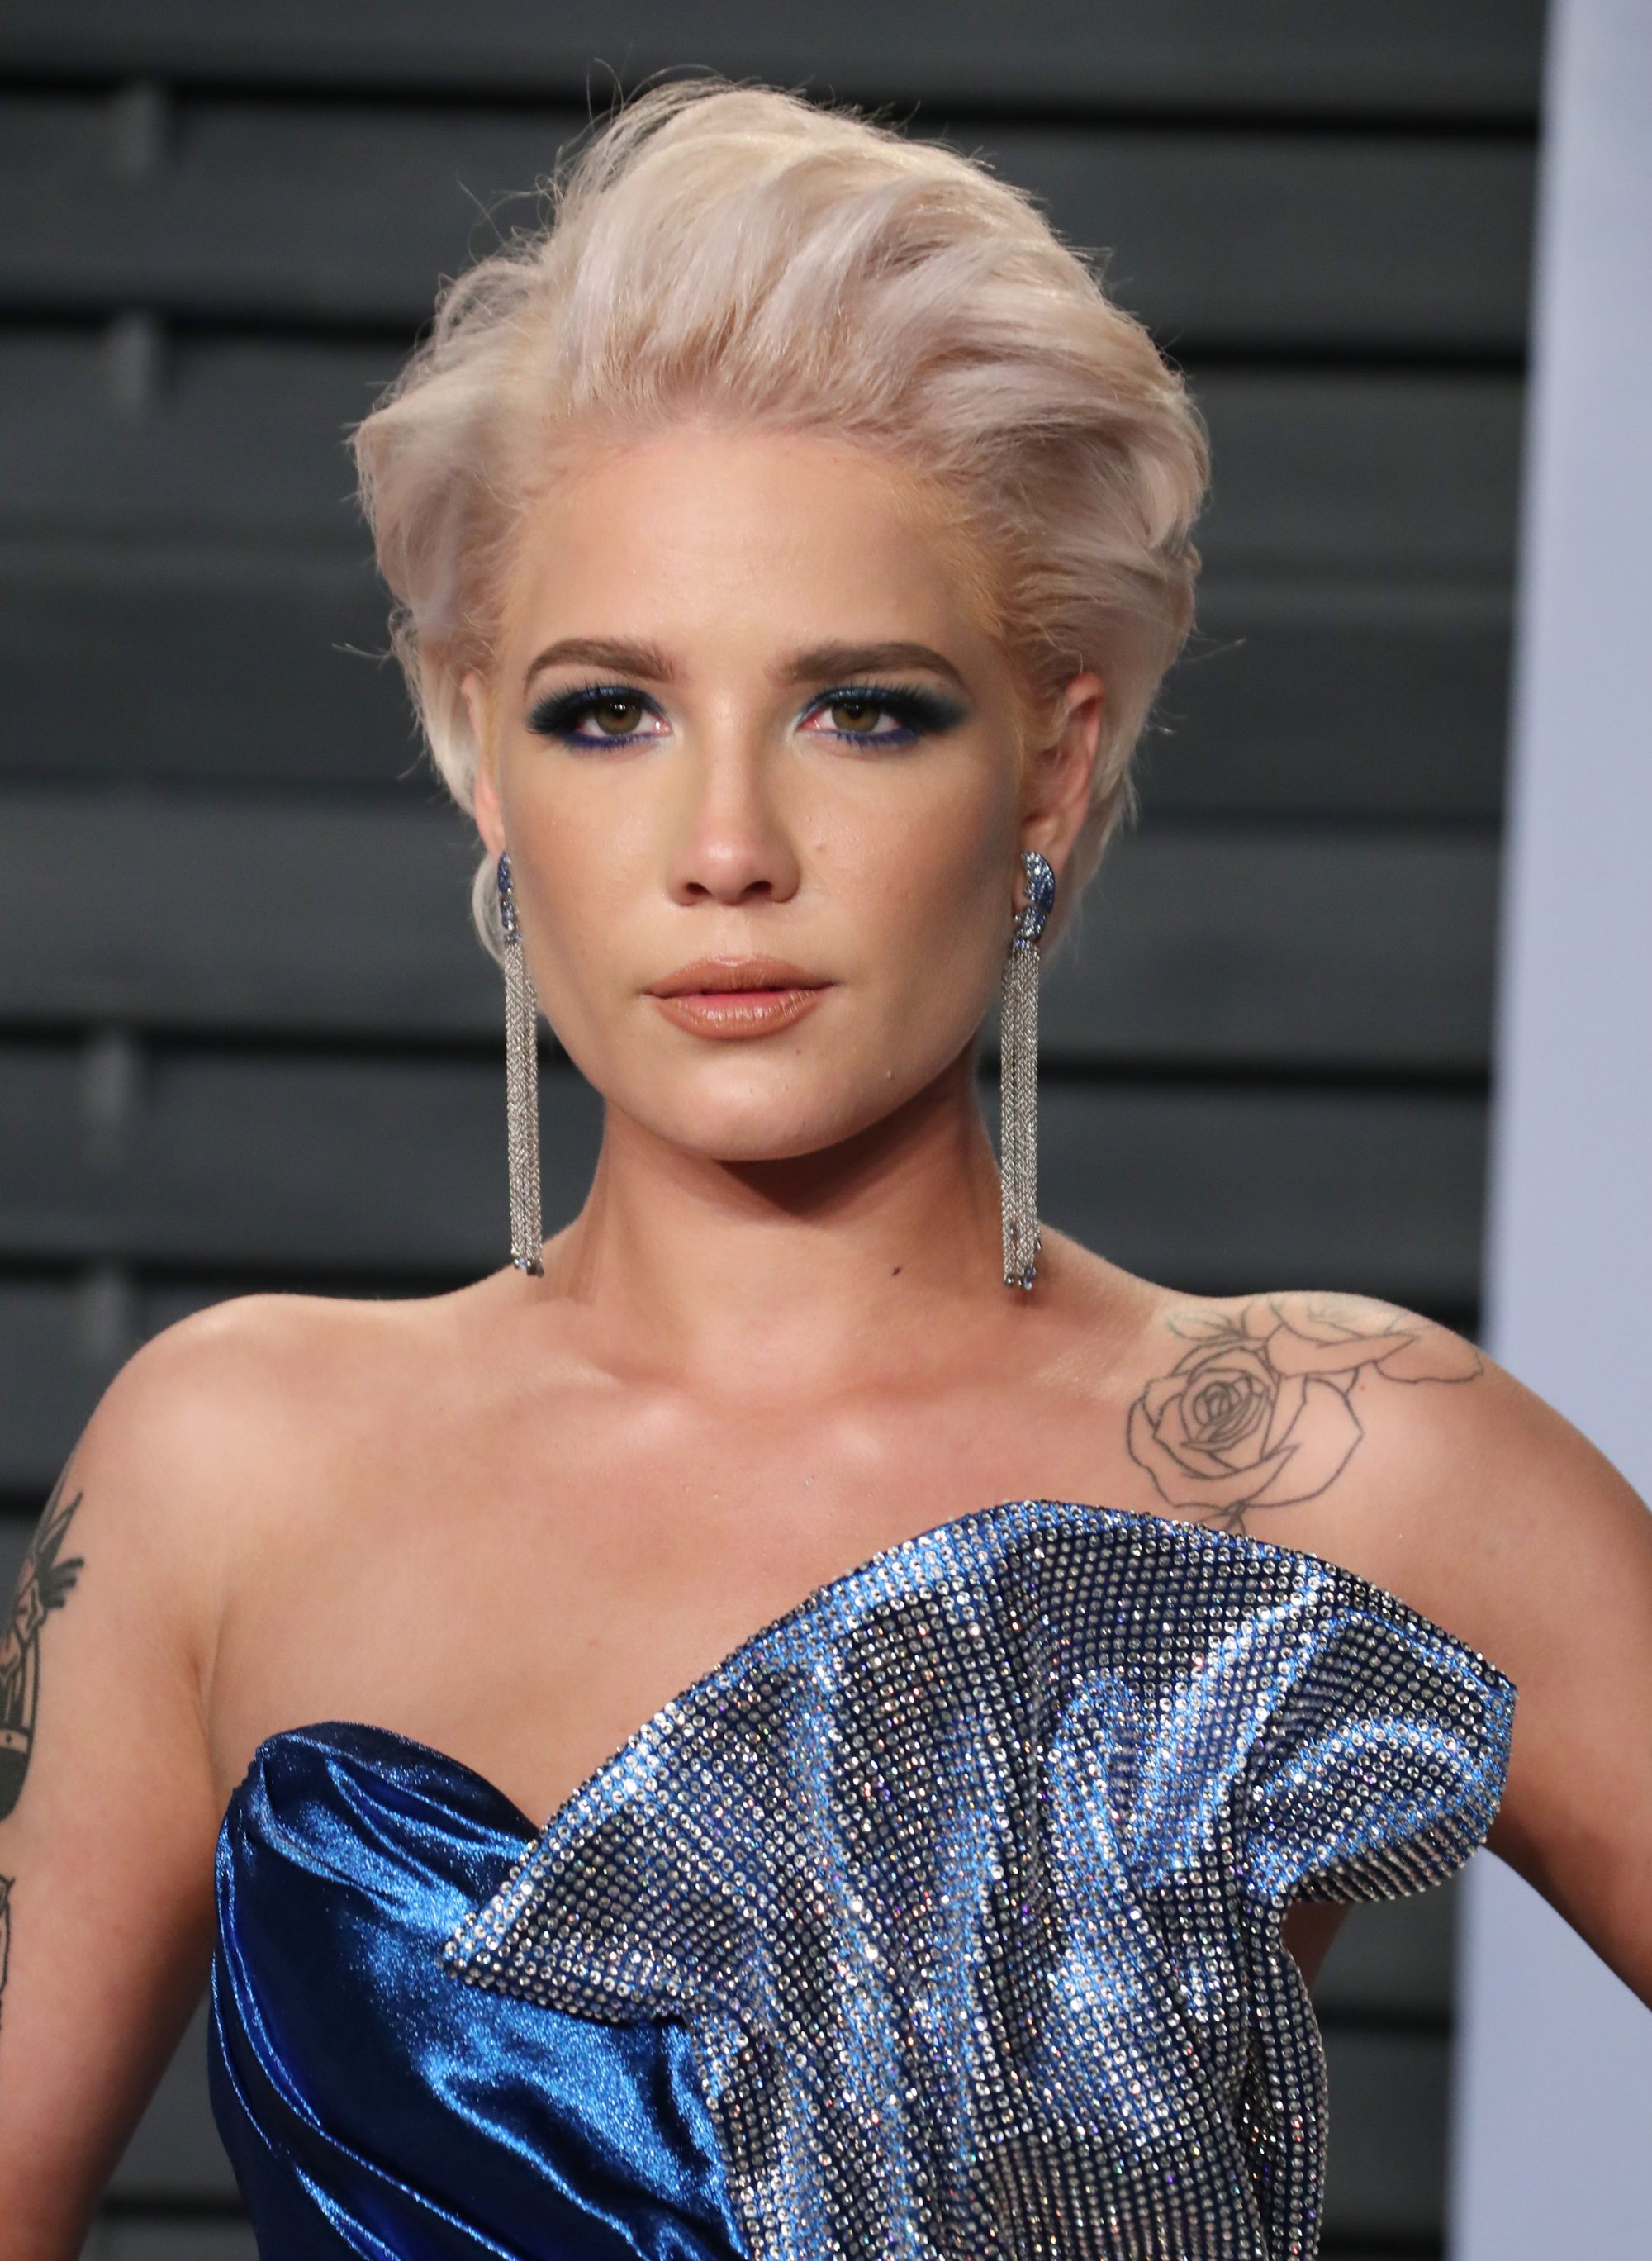 single lesbian women in halsey Charli xcx is following up her hit gay anthem boys with a much-needed lesbian version - girls just like halsey which claims girls will be released as a single.